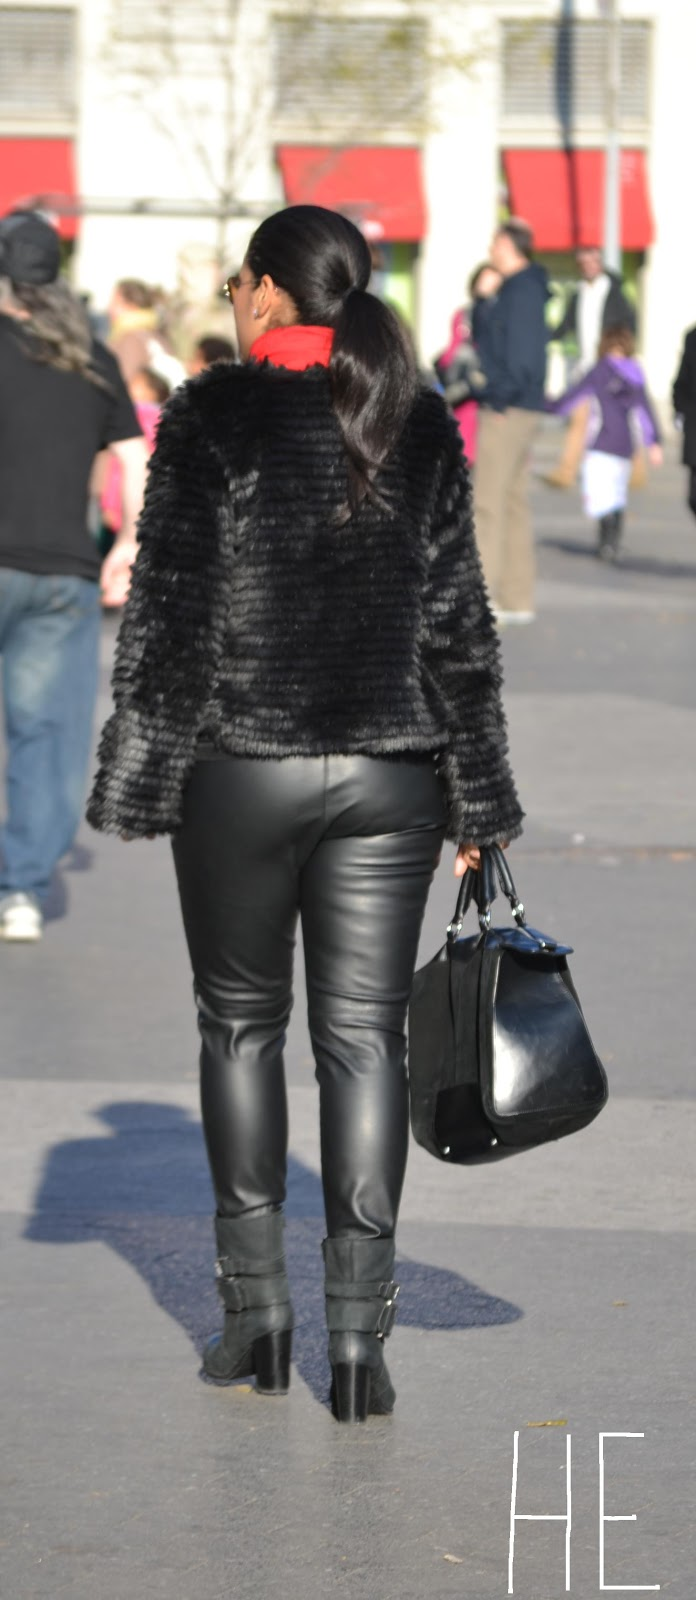 Go back gt gallery for gt women in leather pants and boots